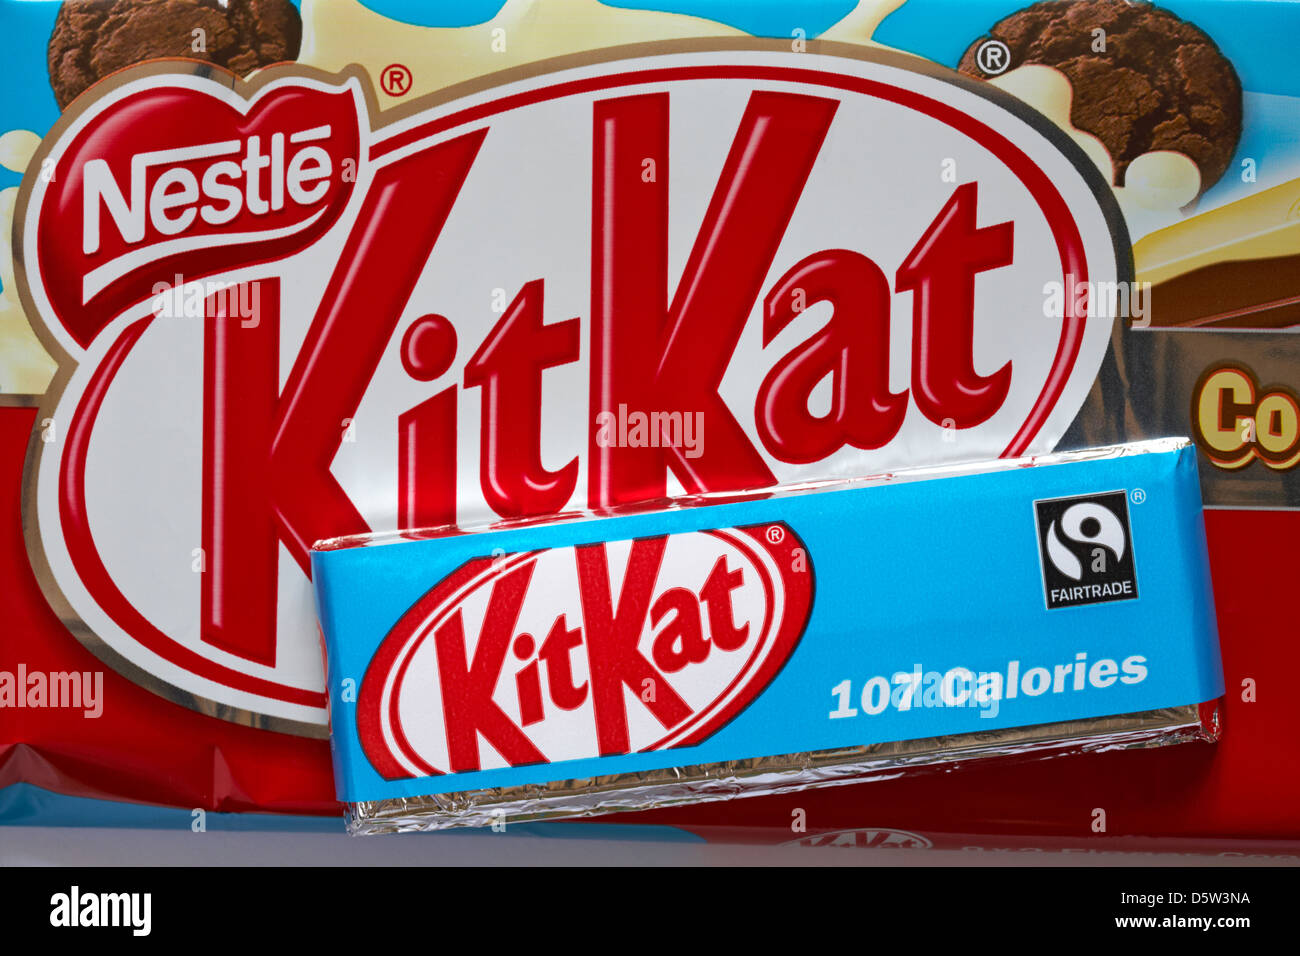 Nestle Cookies & Cream Kitkat multipack with 2 fingers chocolate ...